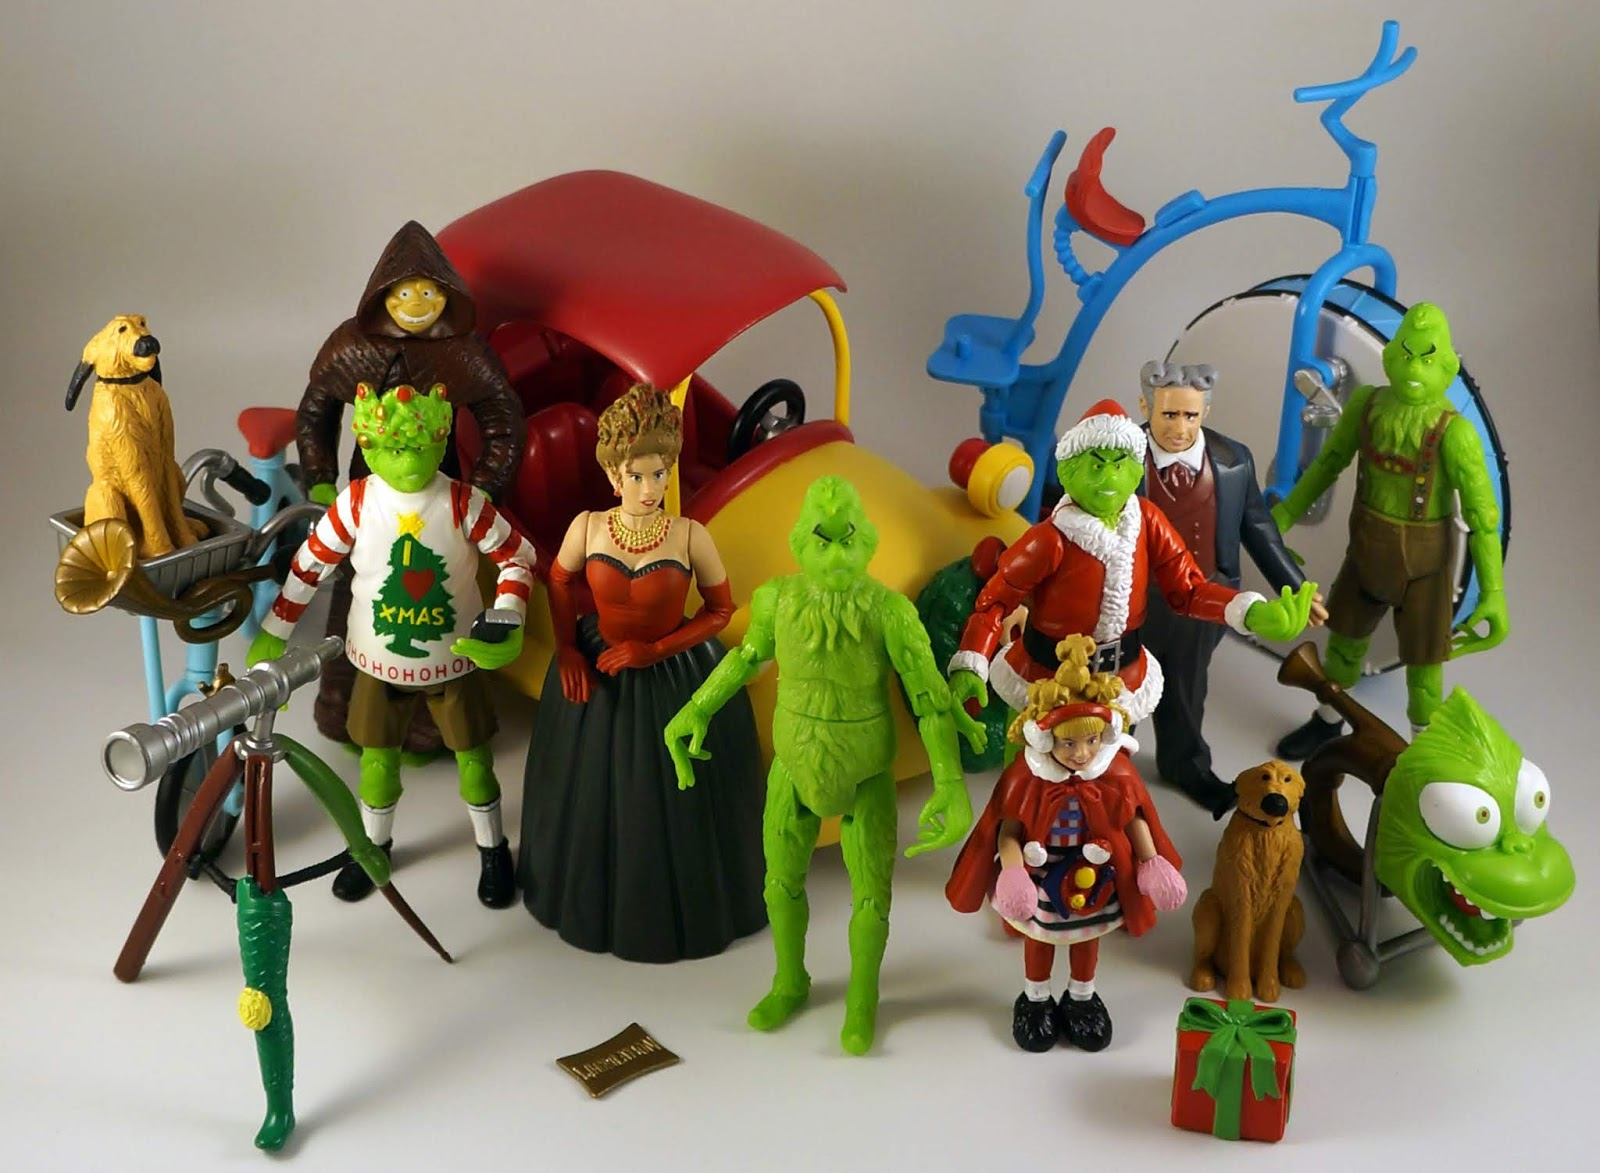 How The Grinch Stole Christmas Movie 2000.Toys Are Life Retro Review How The Grinch Stole Christmas